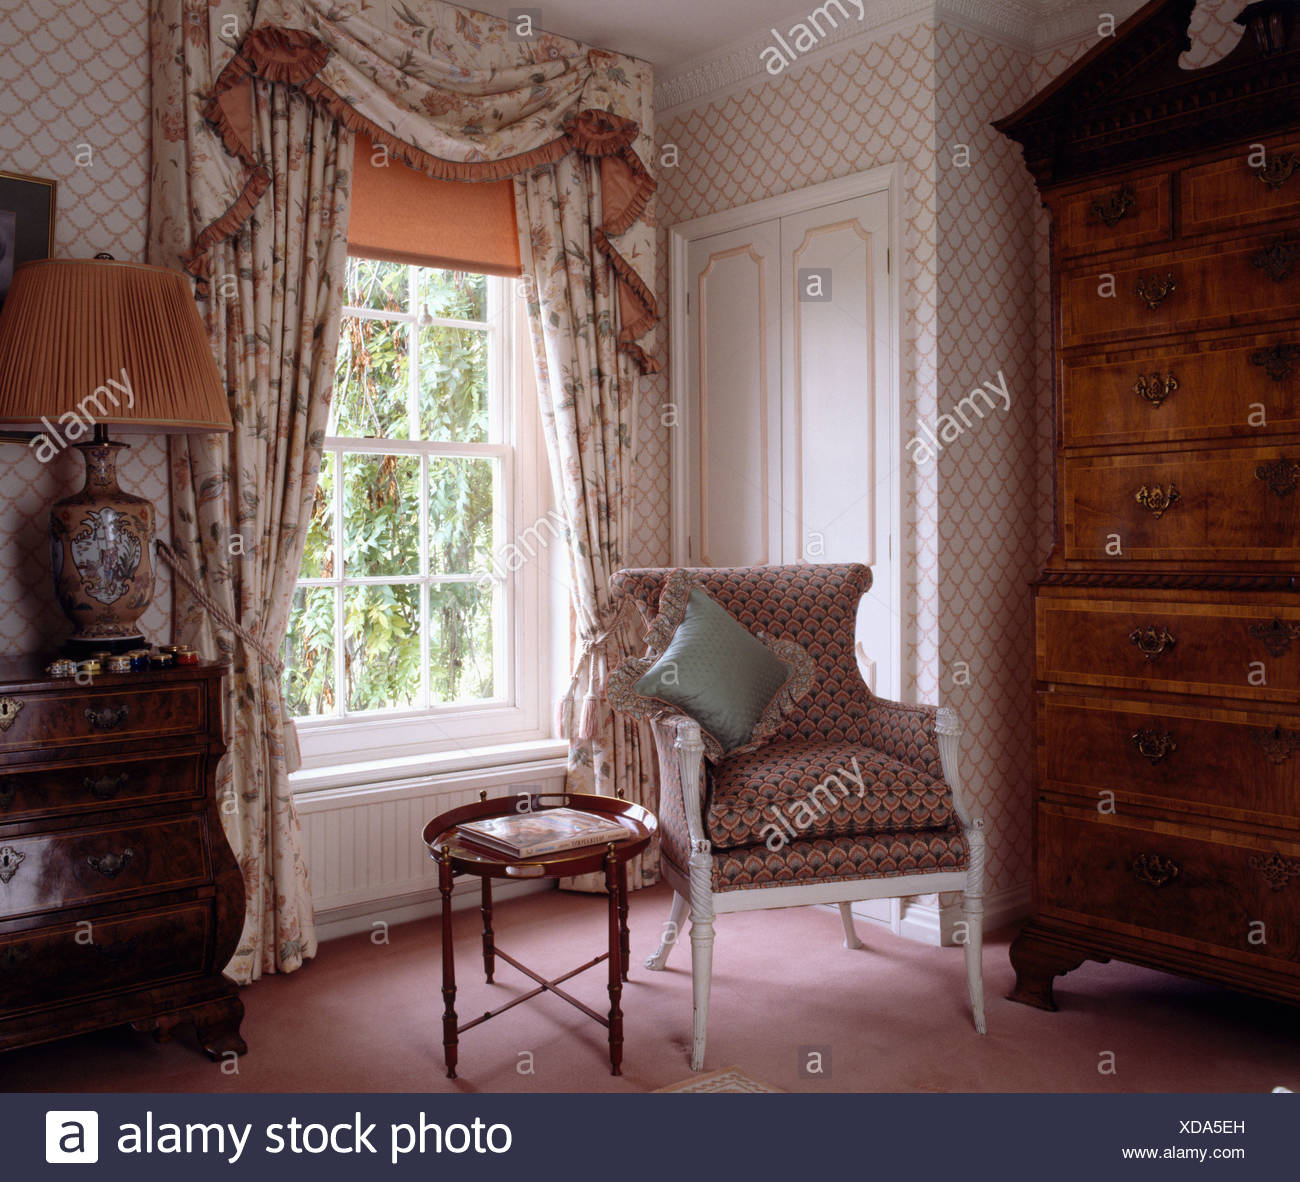 Orange blind and floral swagged curtains in bedroom with small table ...